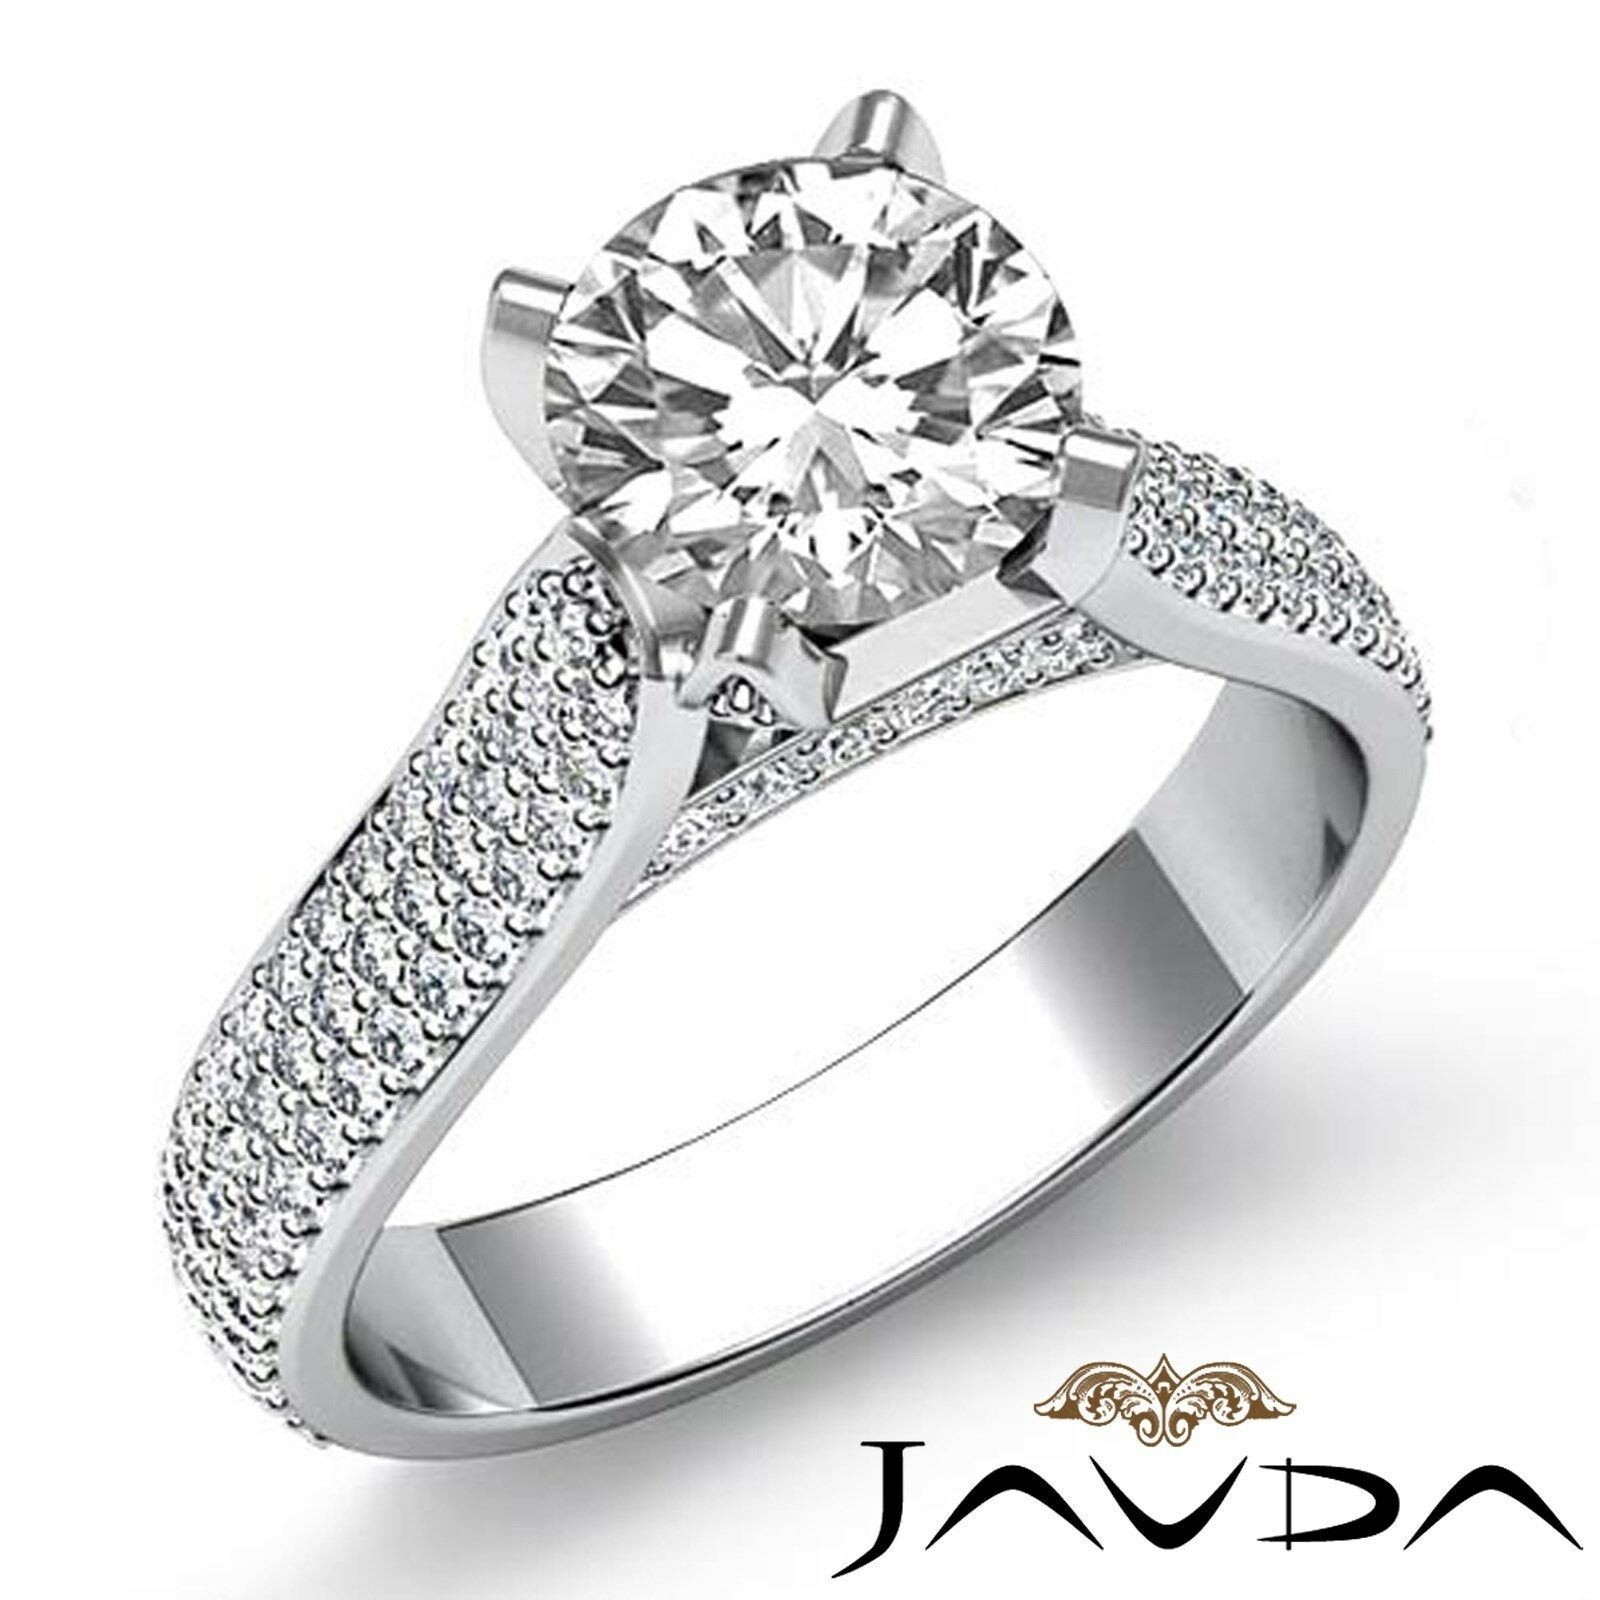 3 Row Pave Shank Round Diamond Engagement Ring Certified GIA I Color VS2 2.95 Ct